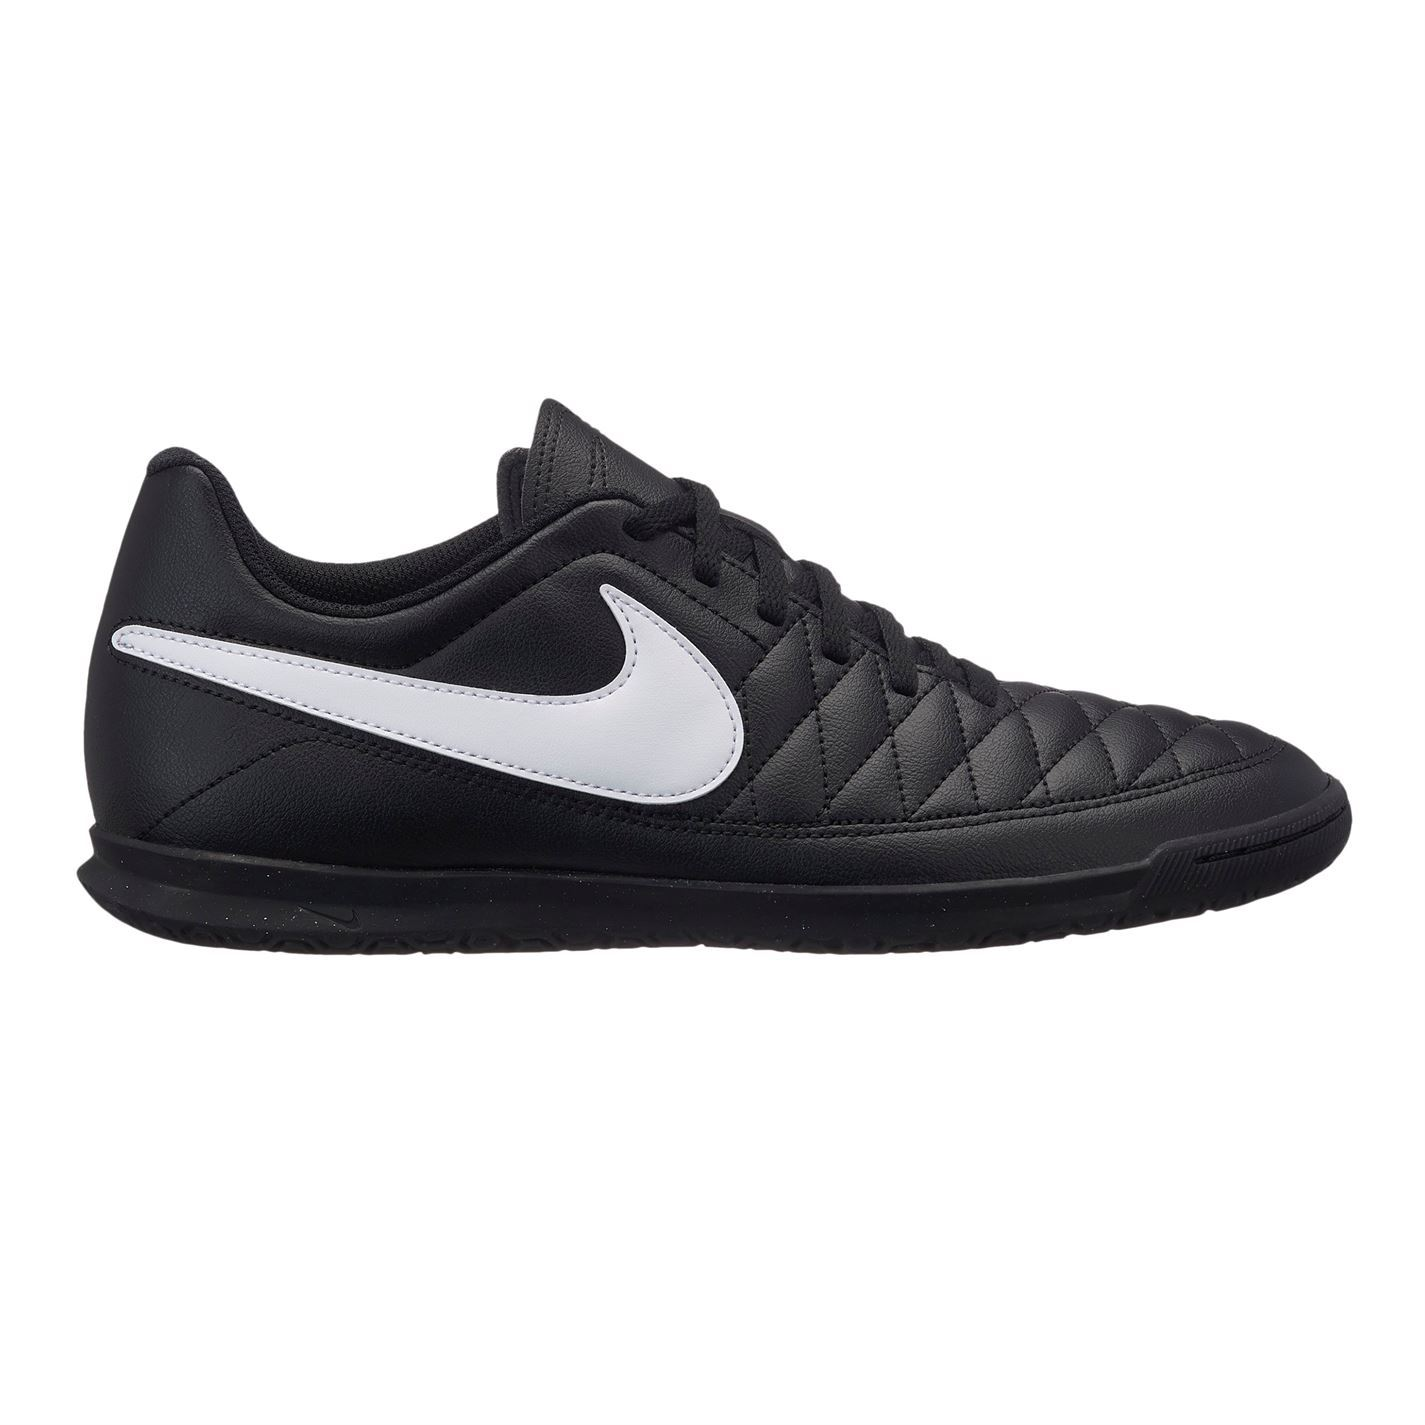 Nike-majestry-Indoor-Football-Baskets-Pour-Homme-Football-Futsal-Chaussures-Baskets-Bottes miniature 21